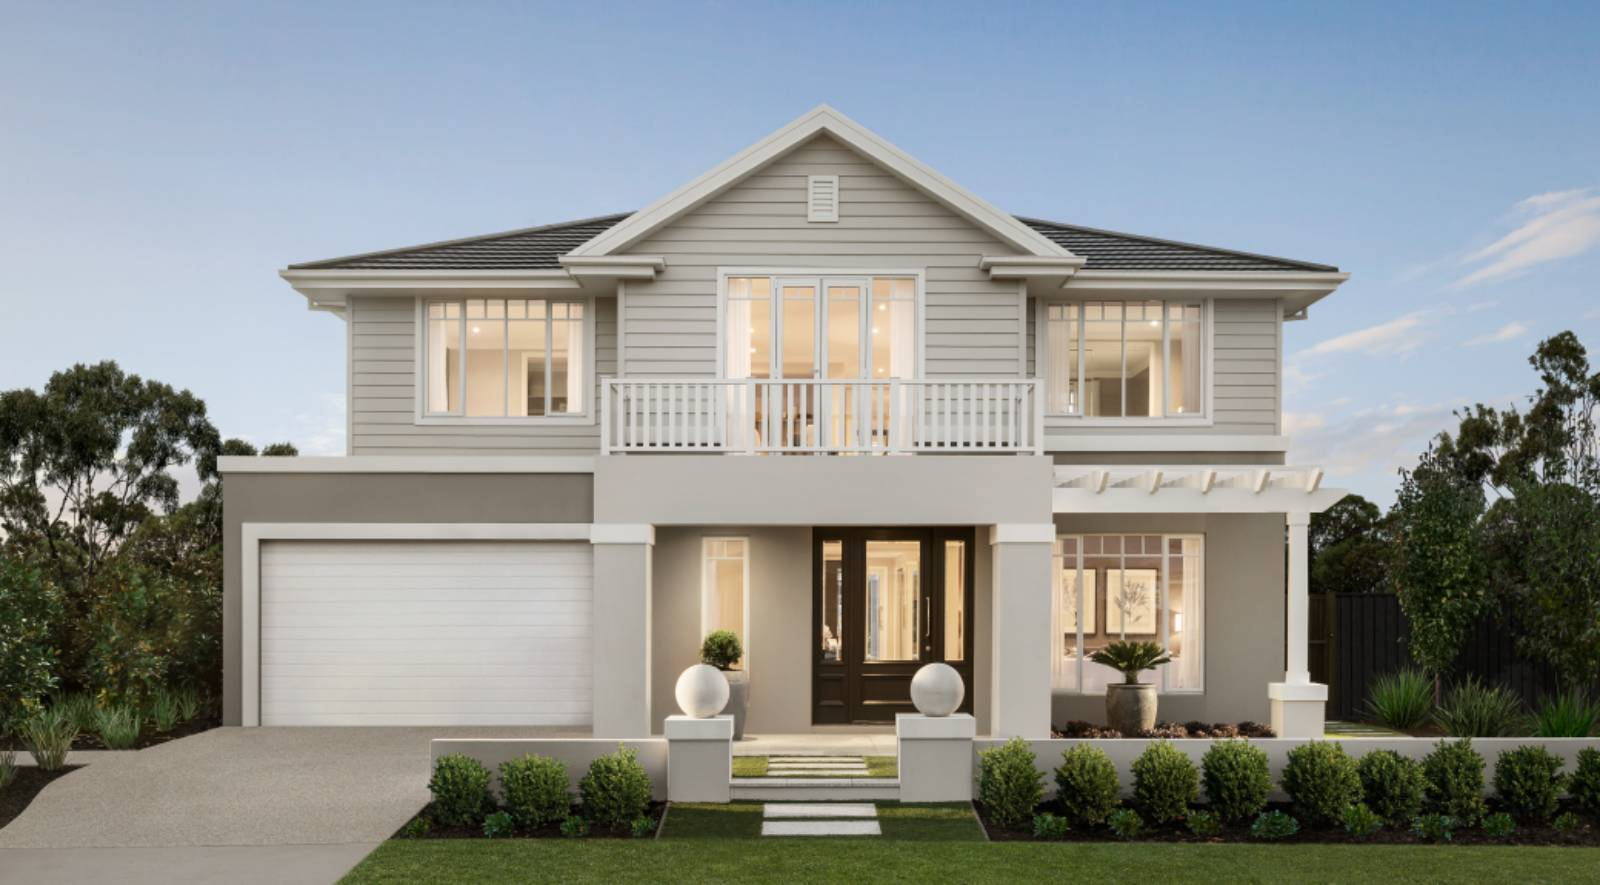 Feature ideas and inspiration needed for portico